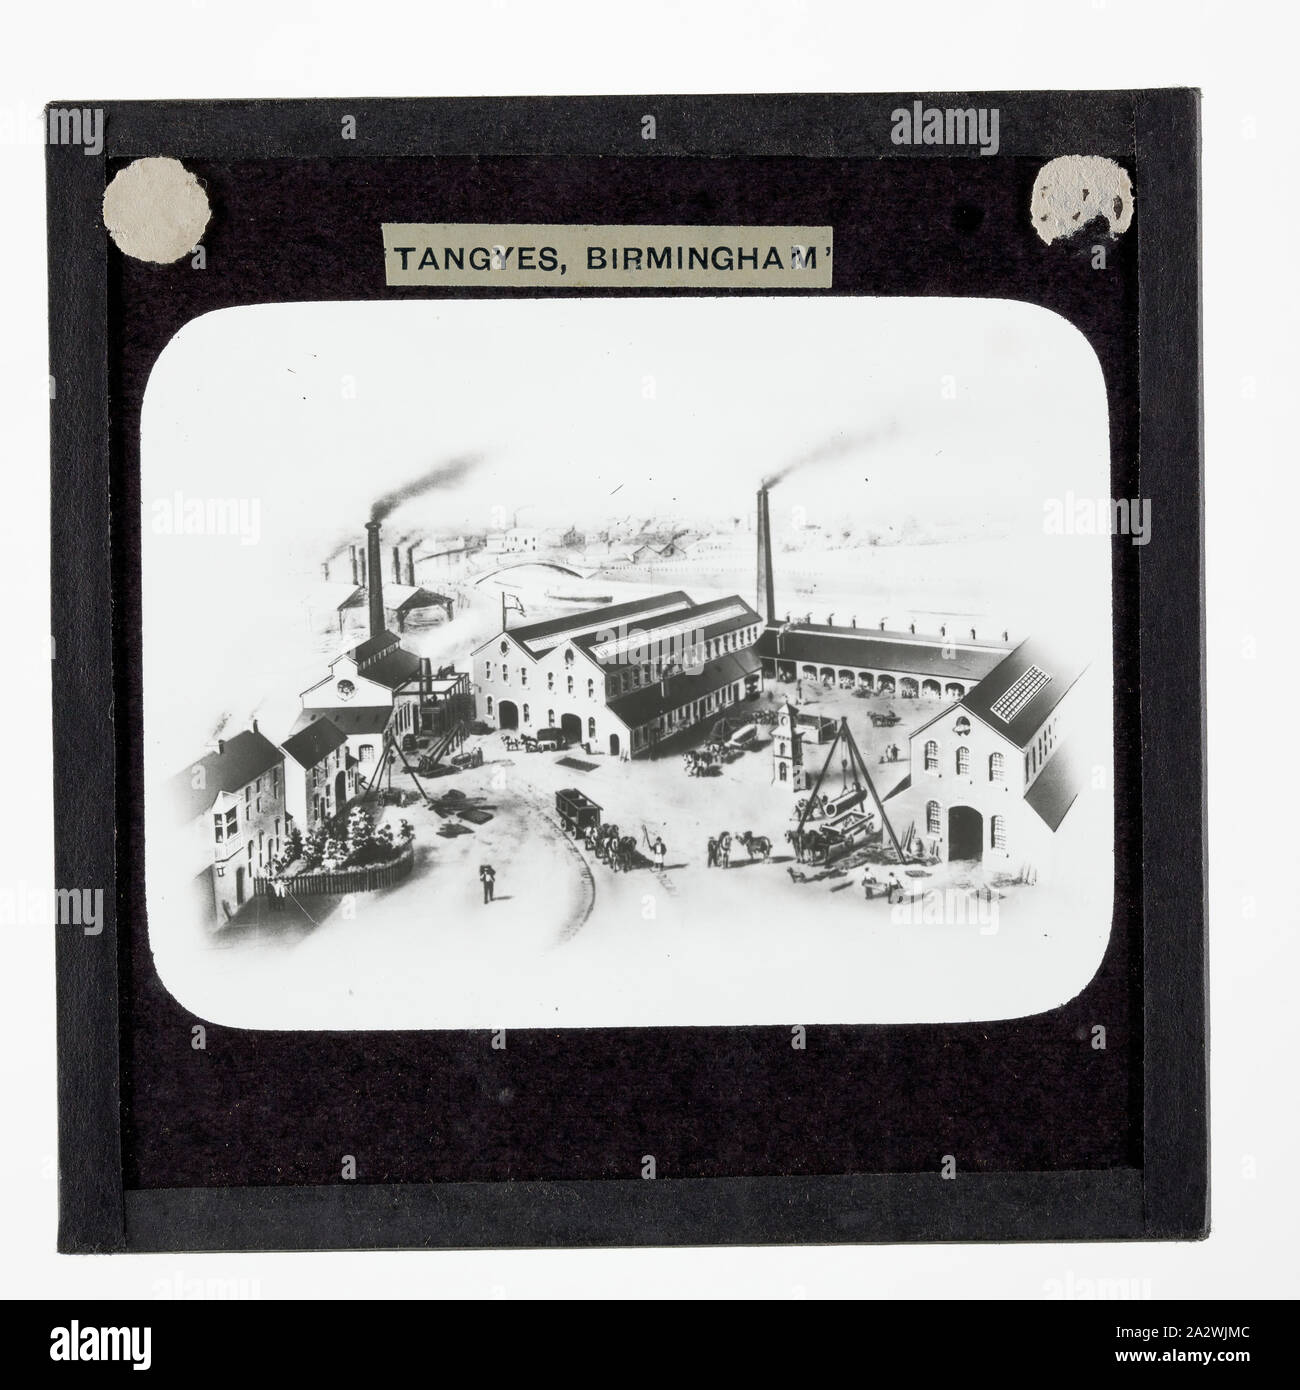 Lantern Slide - Tangyes Ltd, Cornwall Works Illustration, 1869, One of 239 glass lantern slides depicting products manufactured by Tangyes Limited engineers of Birmingham, England. The images include various products such as engines, centrifugal pumps, hydraulic pumps, gas producers, materials testing machines, presses, machine tools, hydraulic jacks etc. Tangyes was a company which operated from 1857 to 1957. They produced a wide variety of engineering Stock Photo